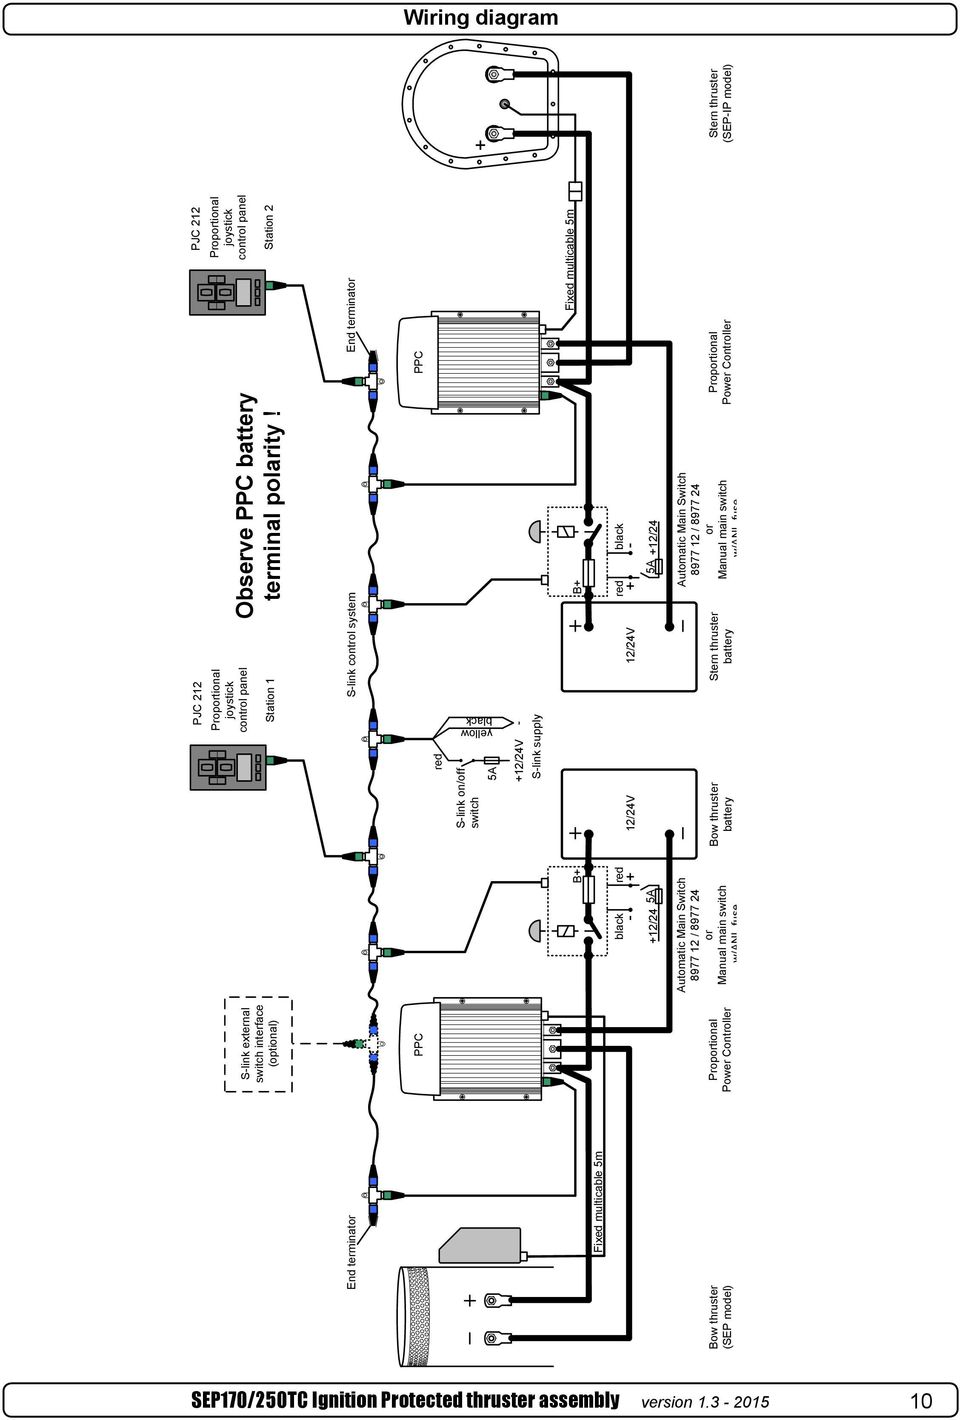 Bow Thruster Wiring Diagram - Wiring Diagram For Auto Air Conditioning -  caprice.tukune.jeanjaures37.frWiring Diagram Resource